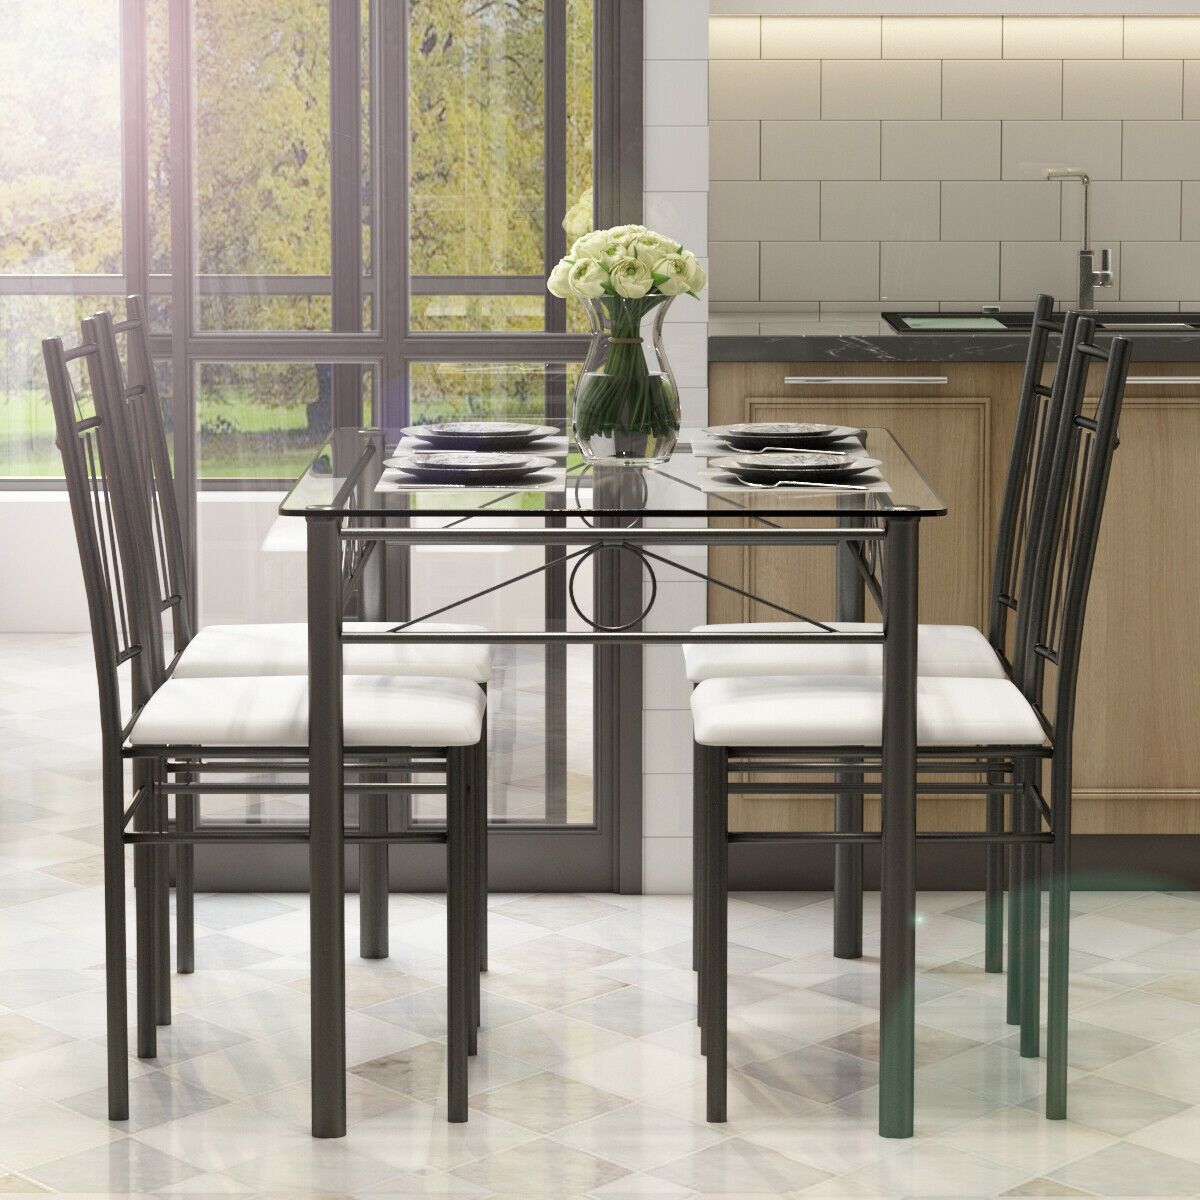 4 Chair Dining Table Set With Price 4 Chair Dining Table Wood